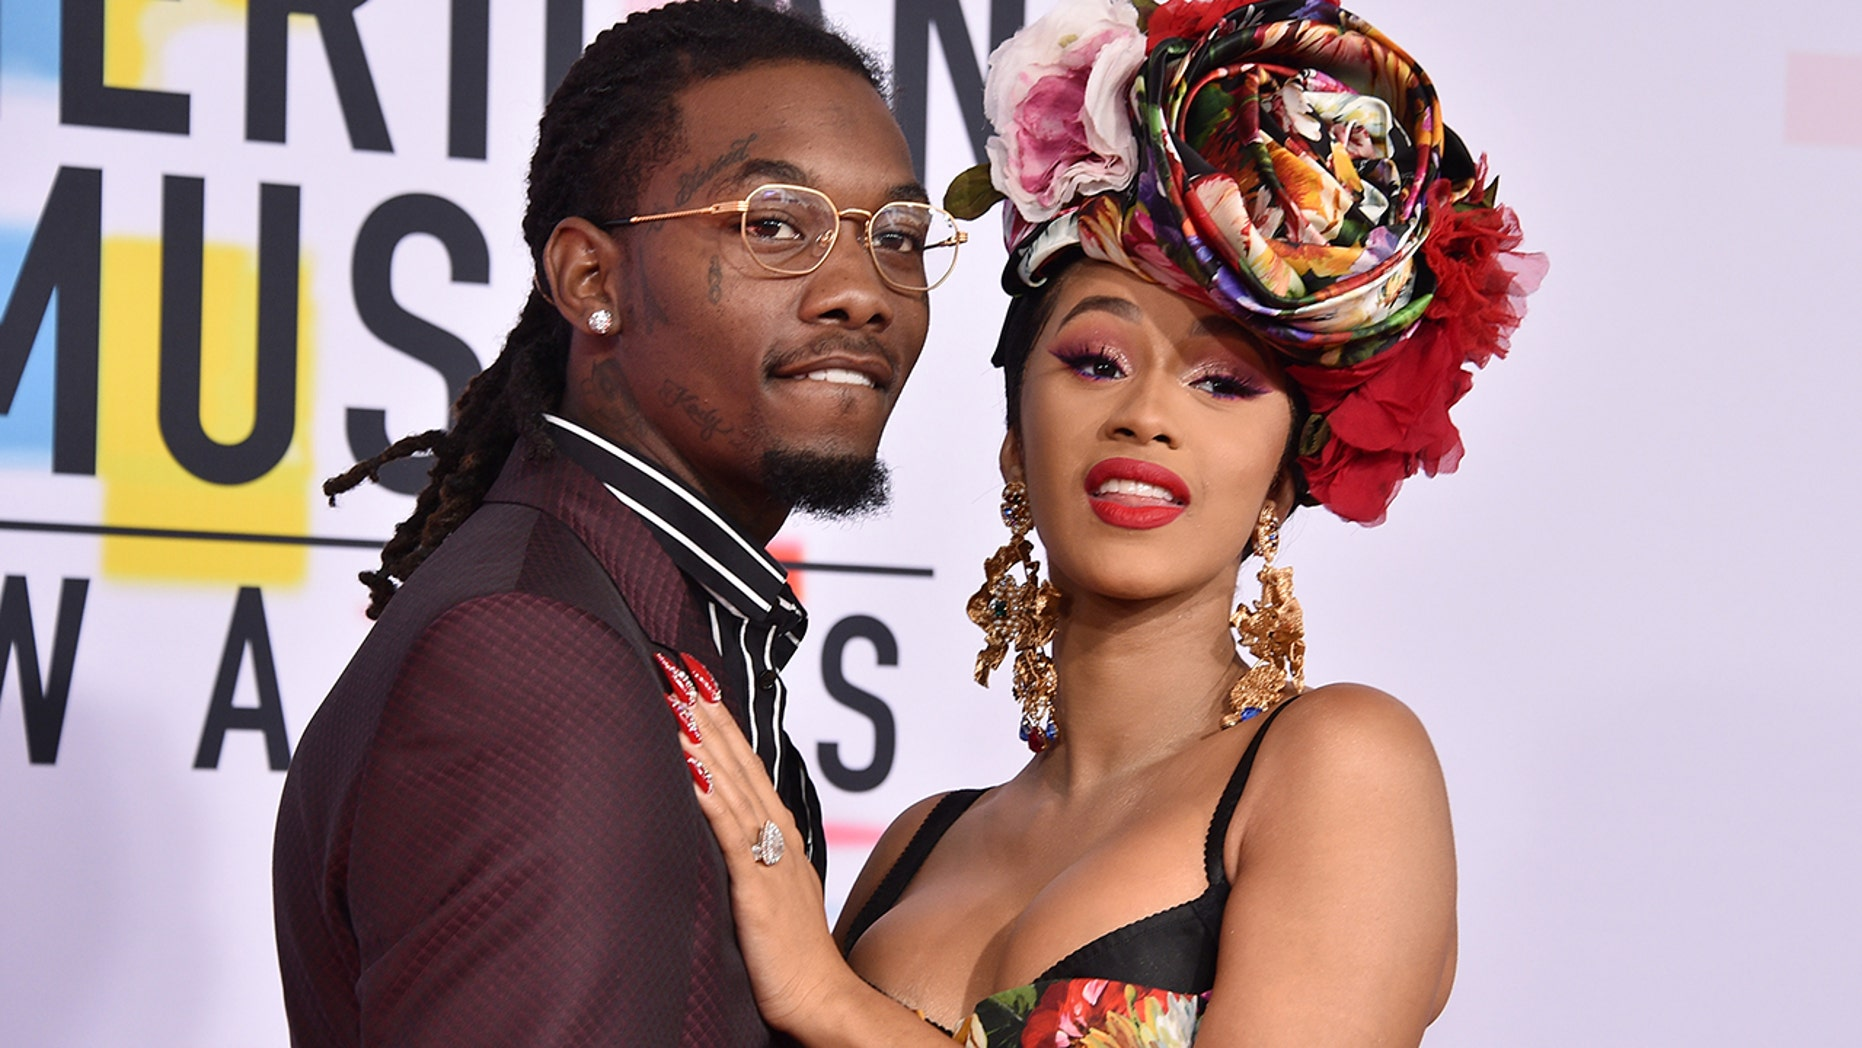 Cardi B announces split with husband, Offset